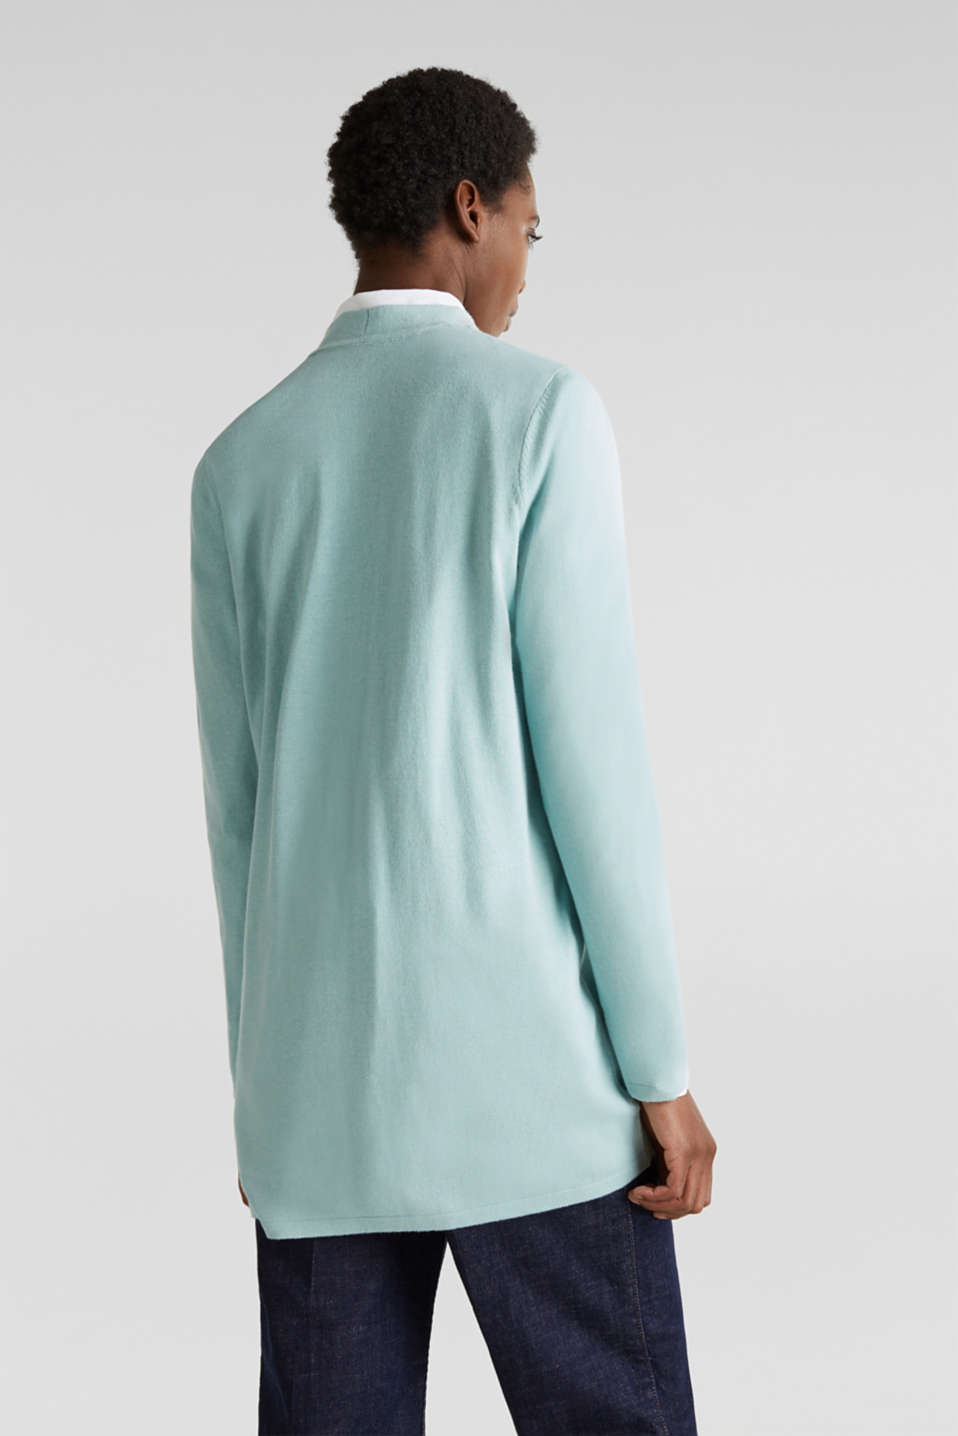 With linen: open cardigan with open-work pattern details, LIGHT AQUA GREEN, detail image number 2